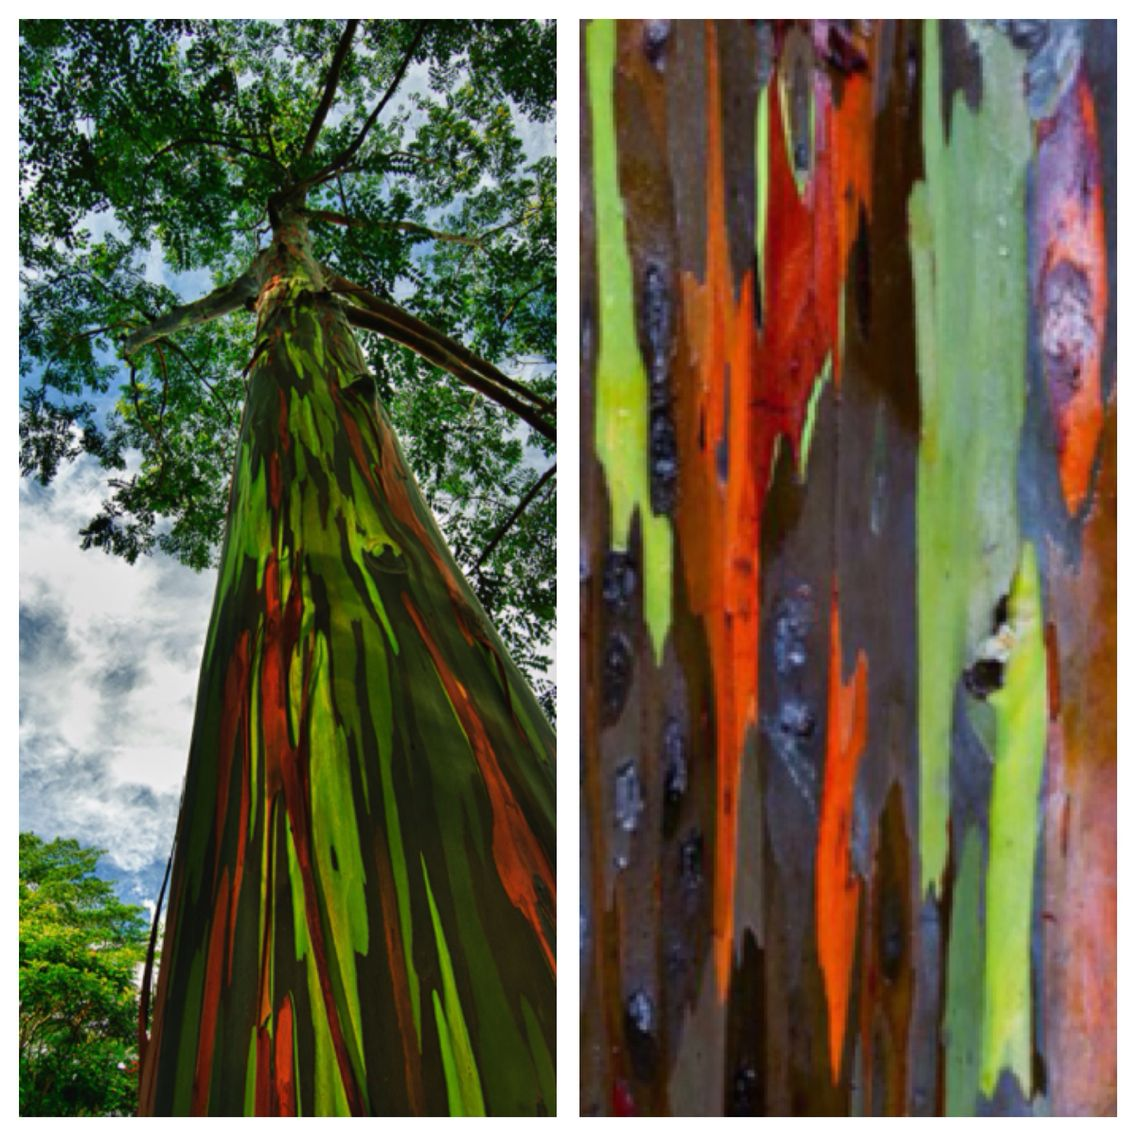 Rainbow Eucalyptus In Kauai, Hawaii.The rainbow eucalyptus, which ...